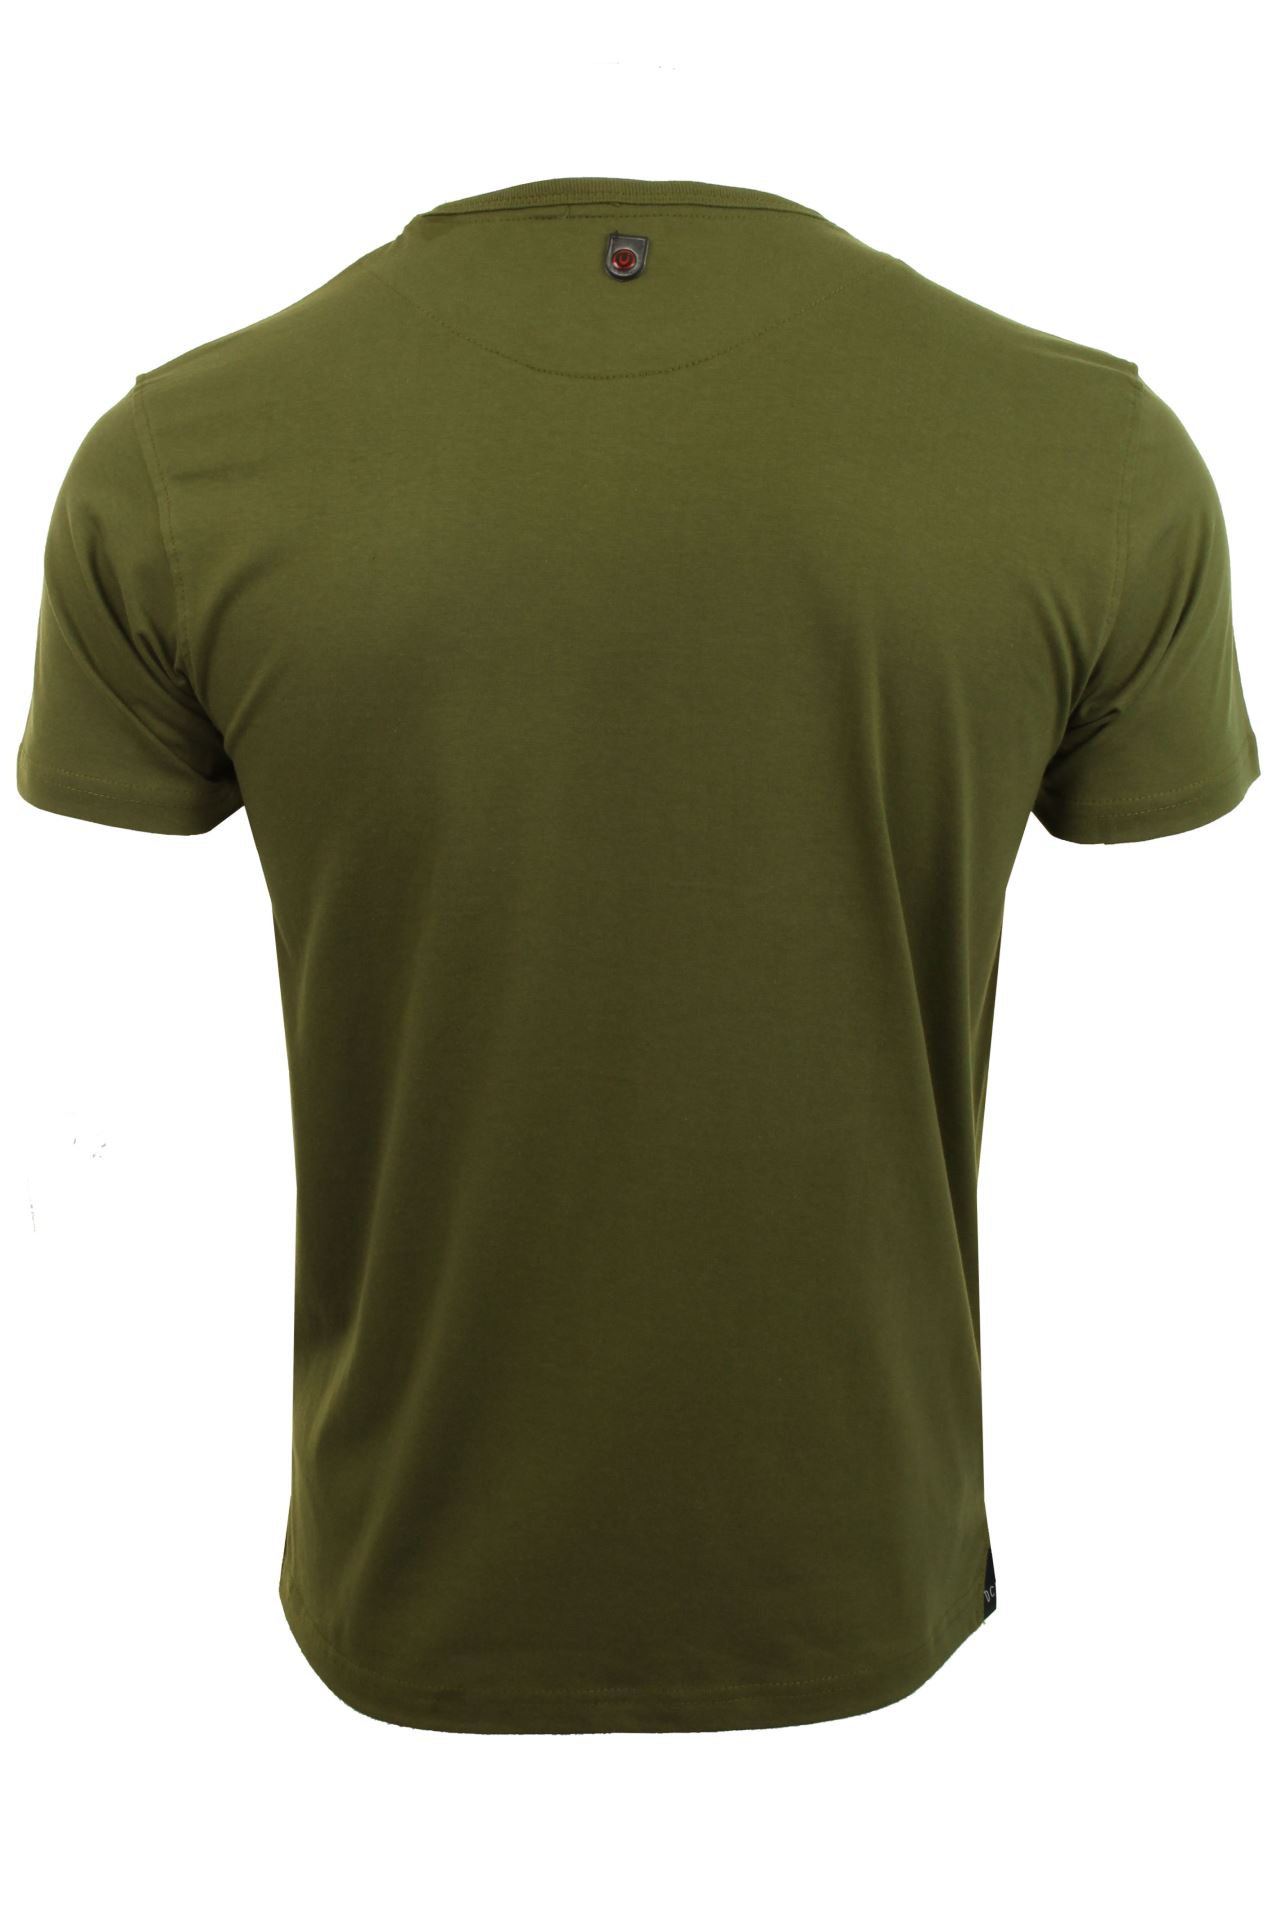 Mens-T-Shirt-by-Duck-and-Cover-039-Scaup-039